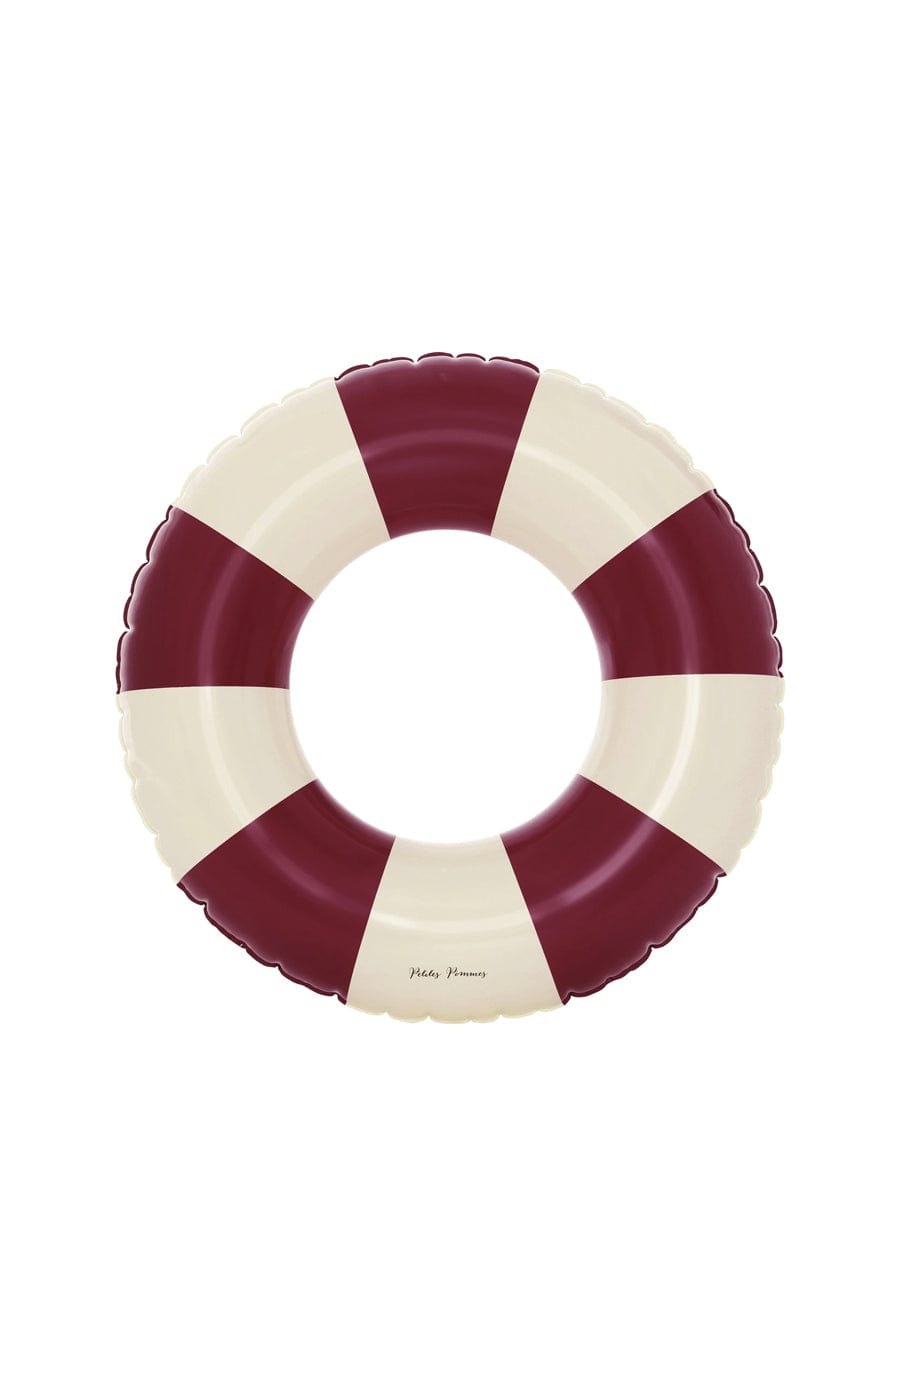 Petites Pommes 45cm Ruby Red Olivia Classic Float (1-3 Years) - Hello Little Birdie